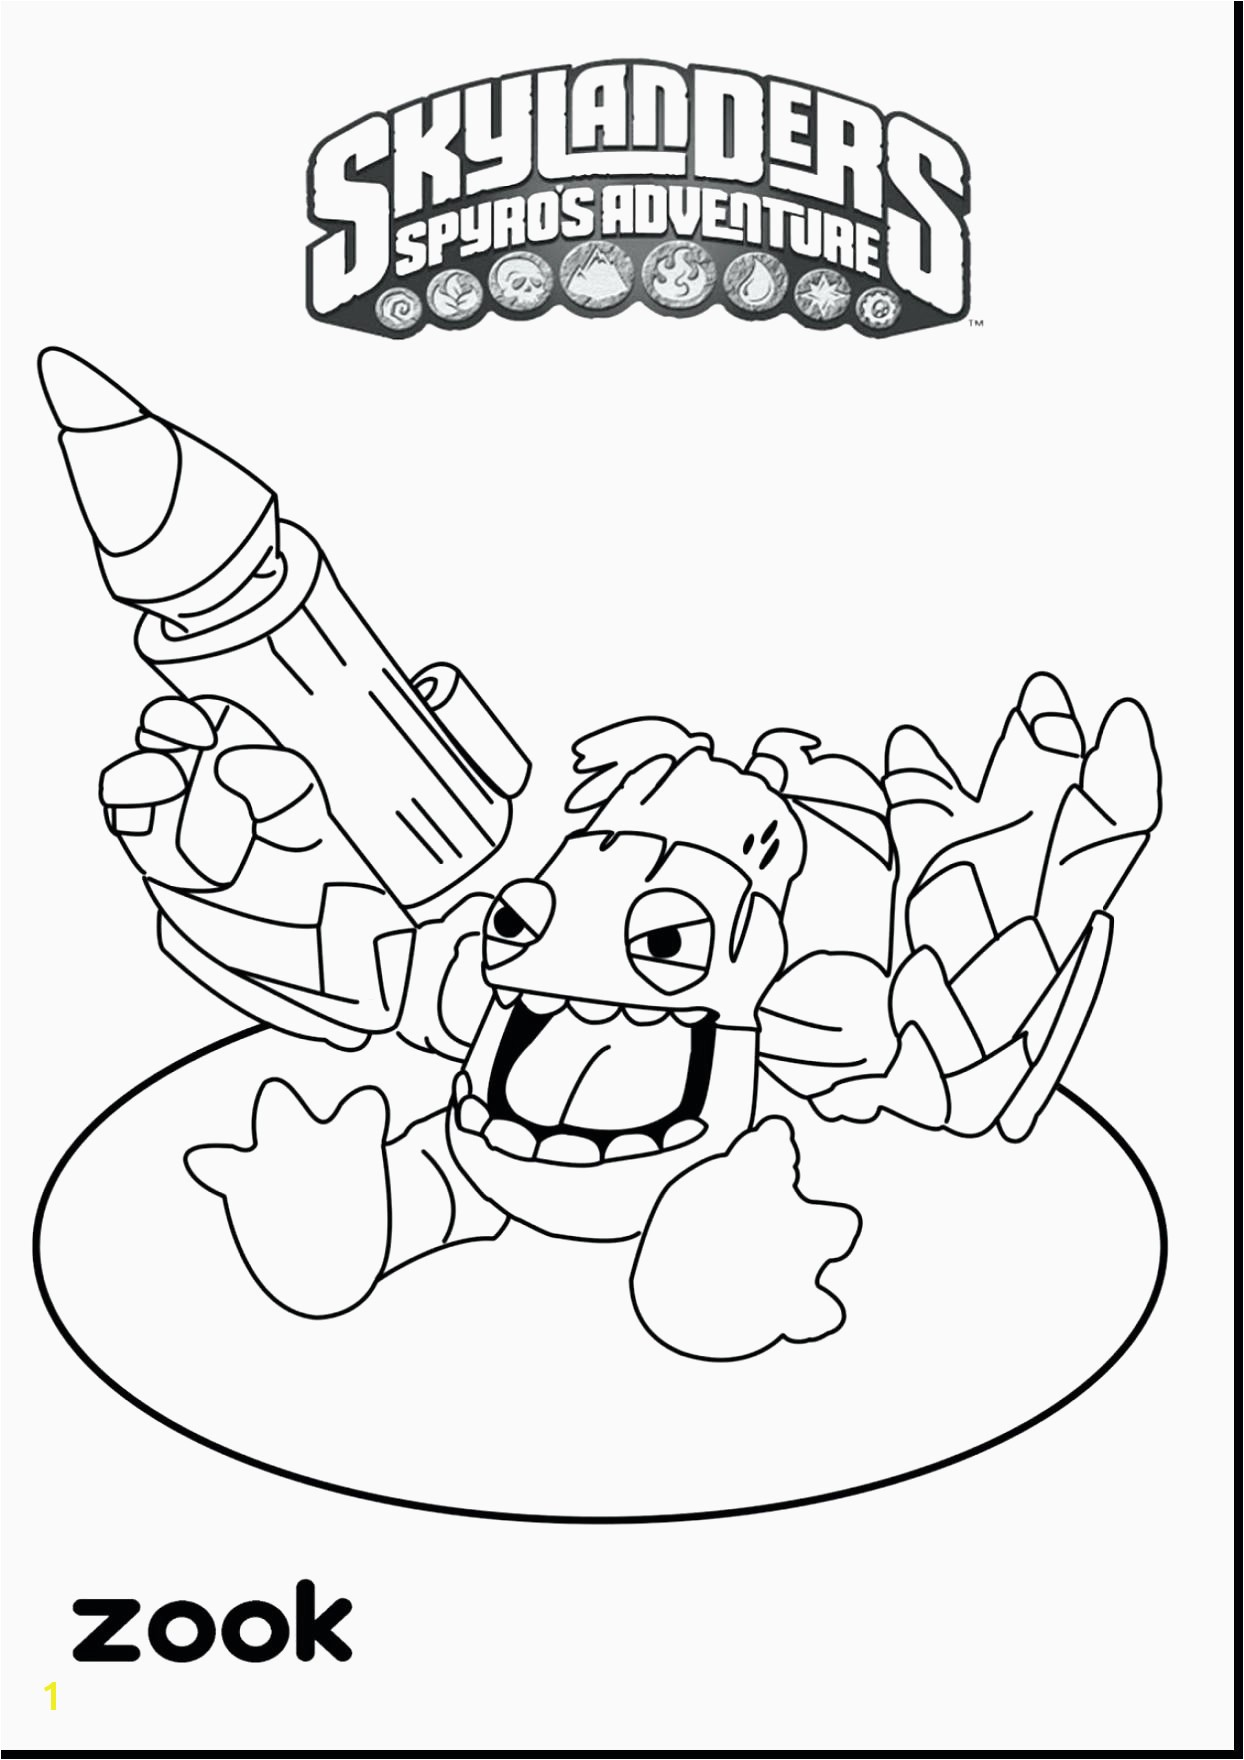 Batman Joker Coloring Pages Batmobile Coloring Pages Best the Joker Coloring Pages